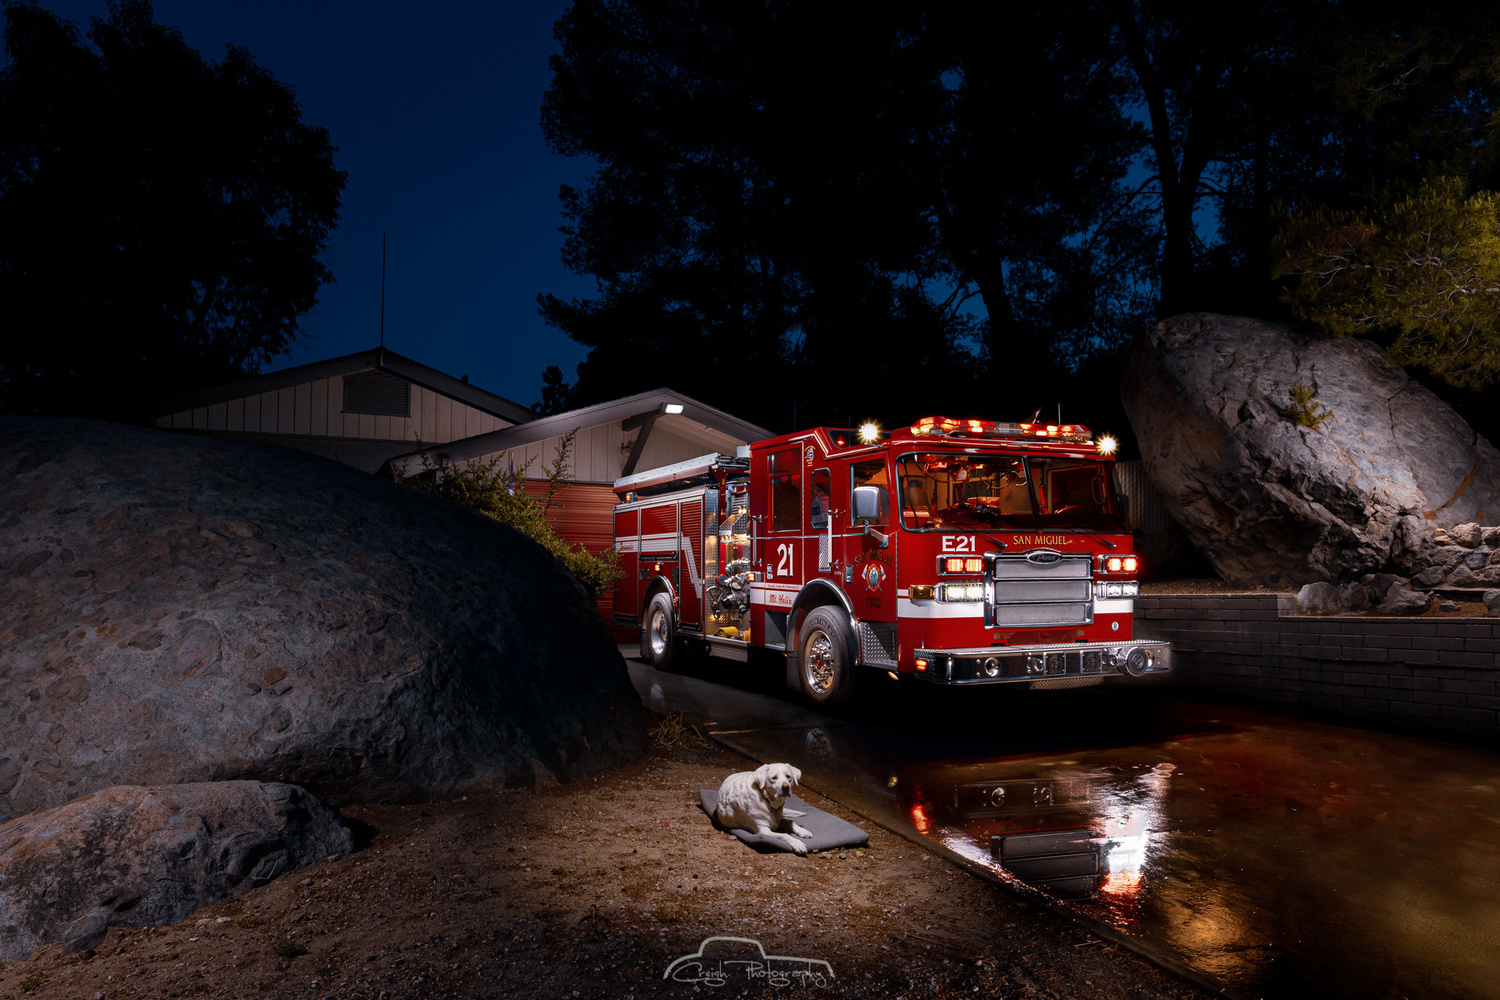 San Miguel Fire Station 21 by Creigh McIntyre